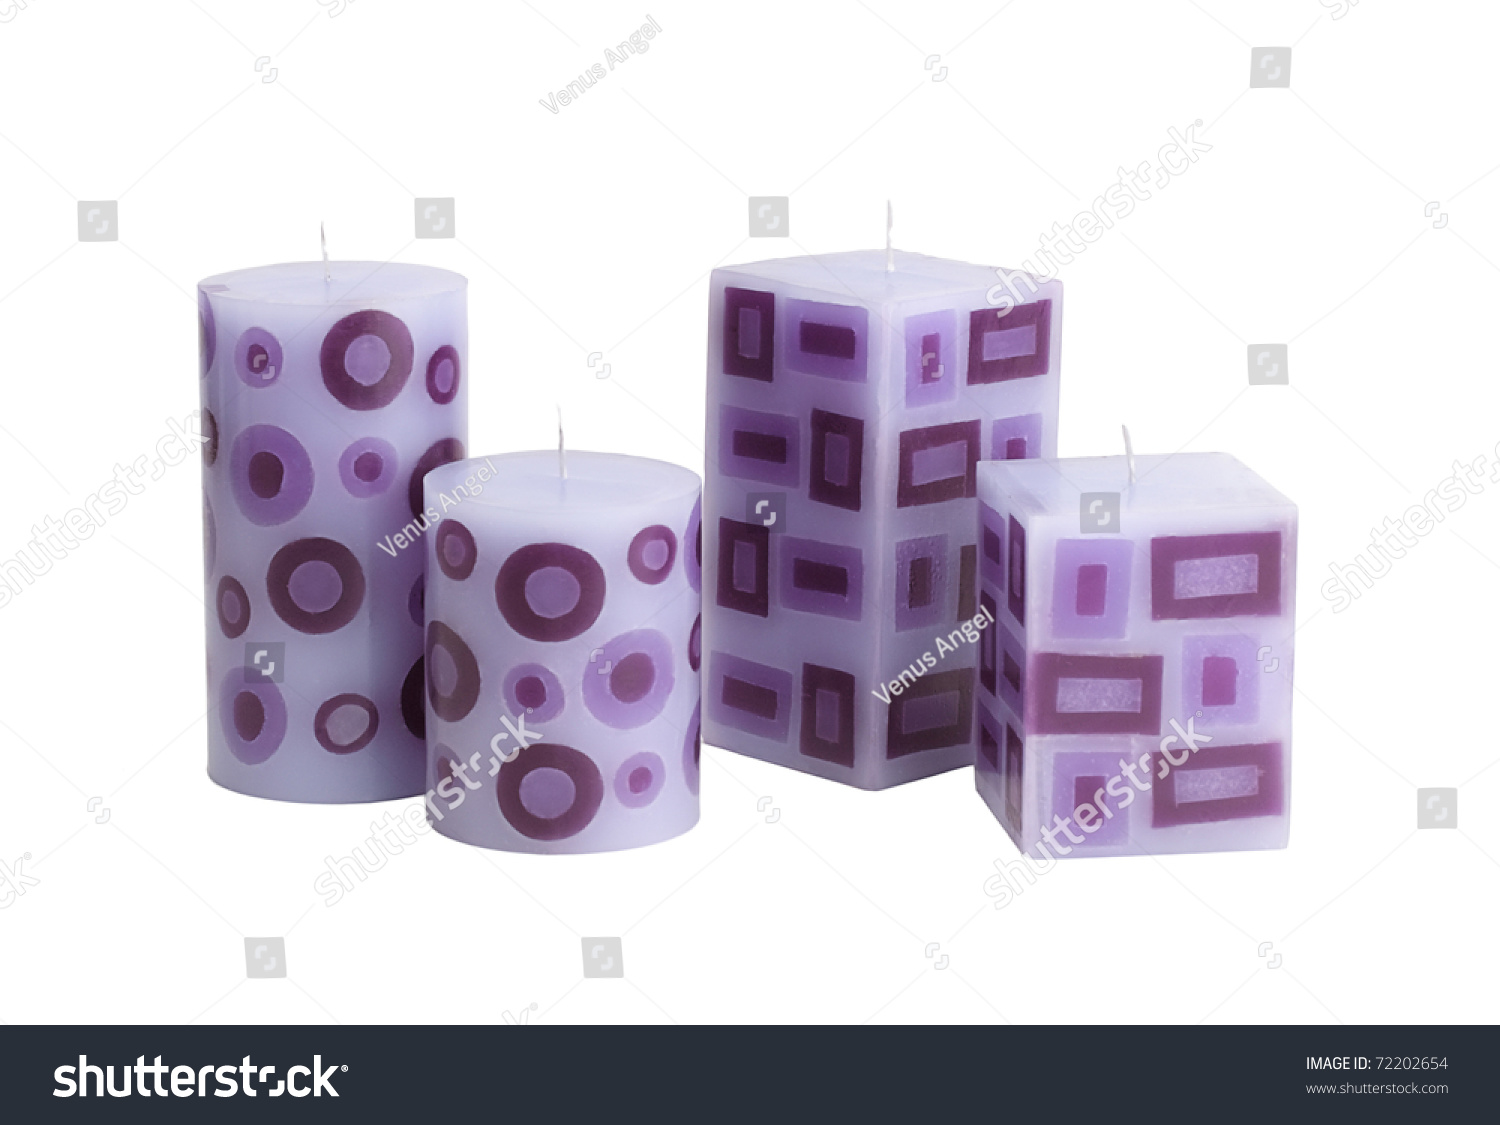 decorative candles for decorate your home or spa - Decorative Candles